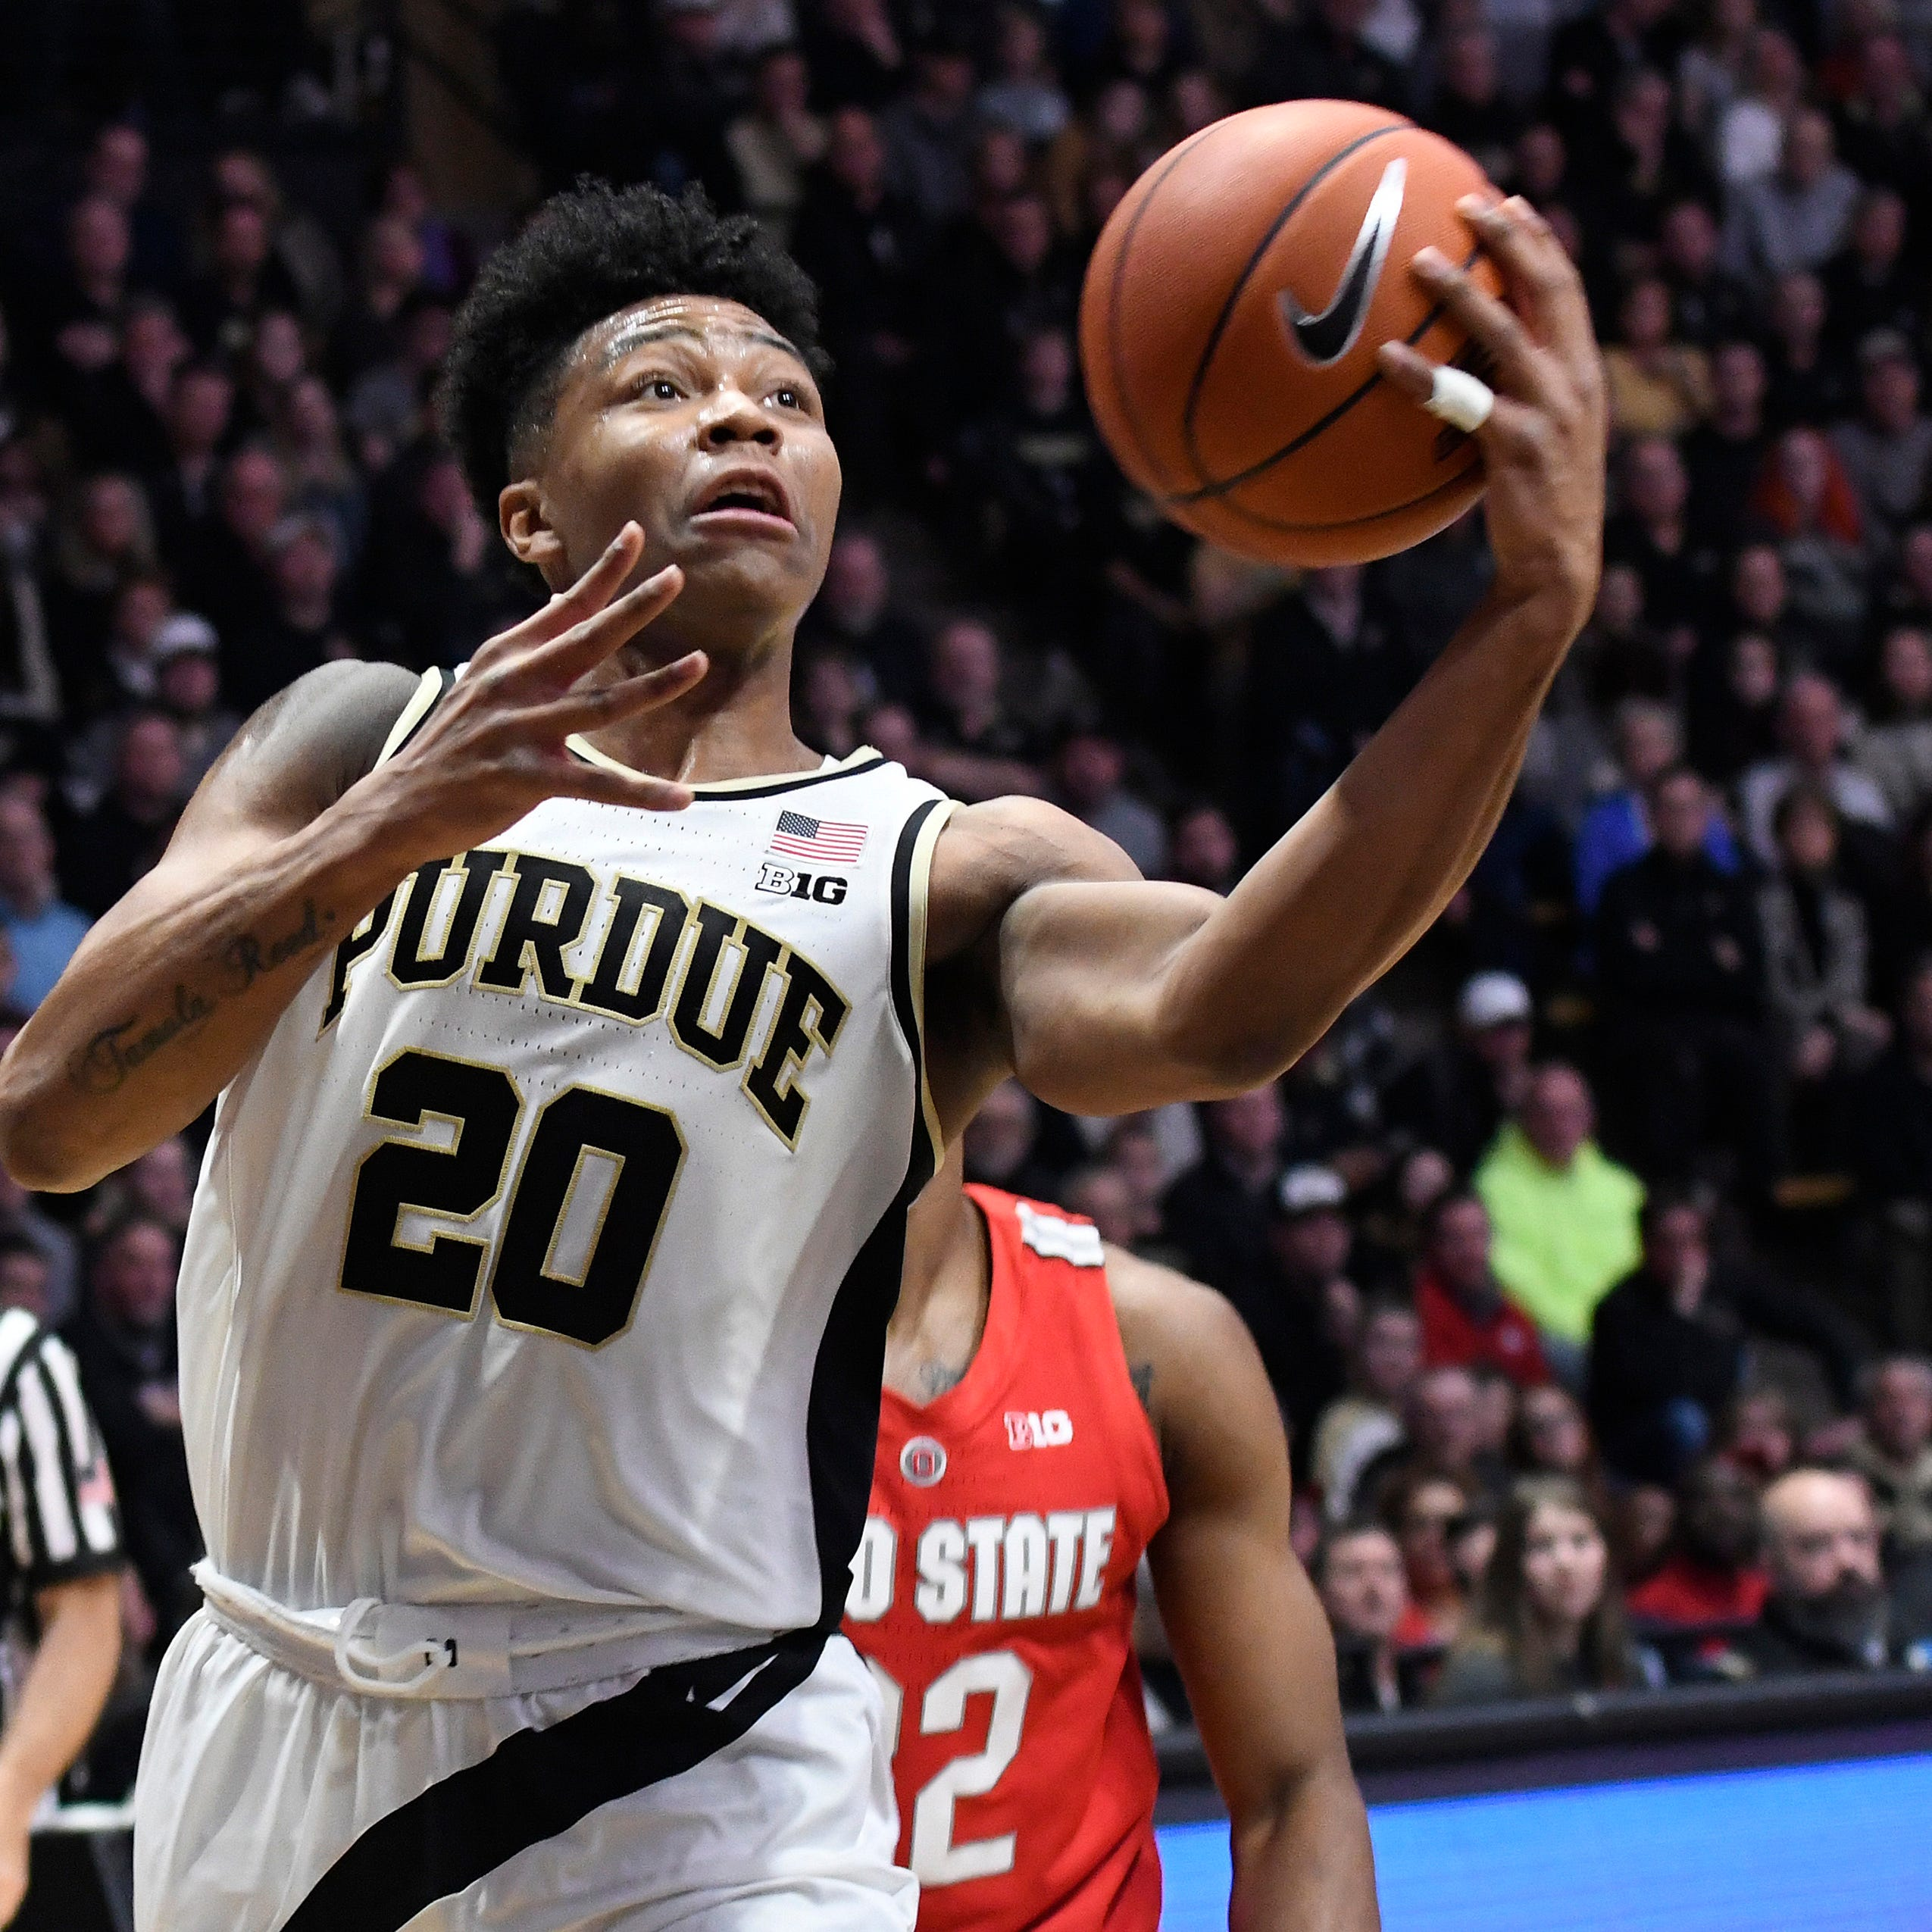 March Madness 2019: Purdue basketball's Nojel Eastern caused a scare with ankle injury